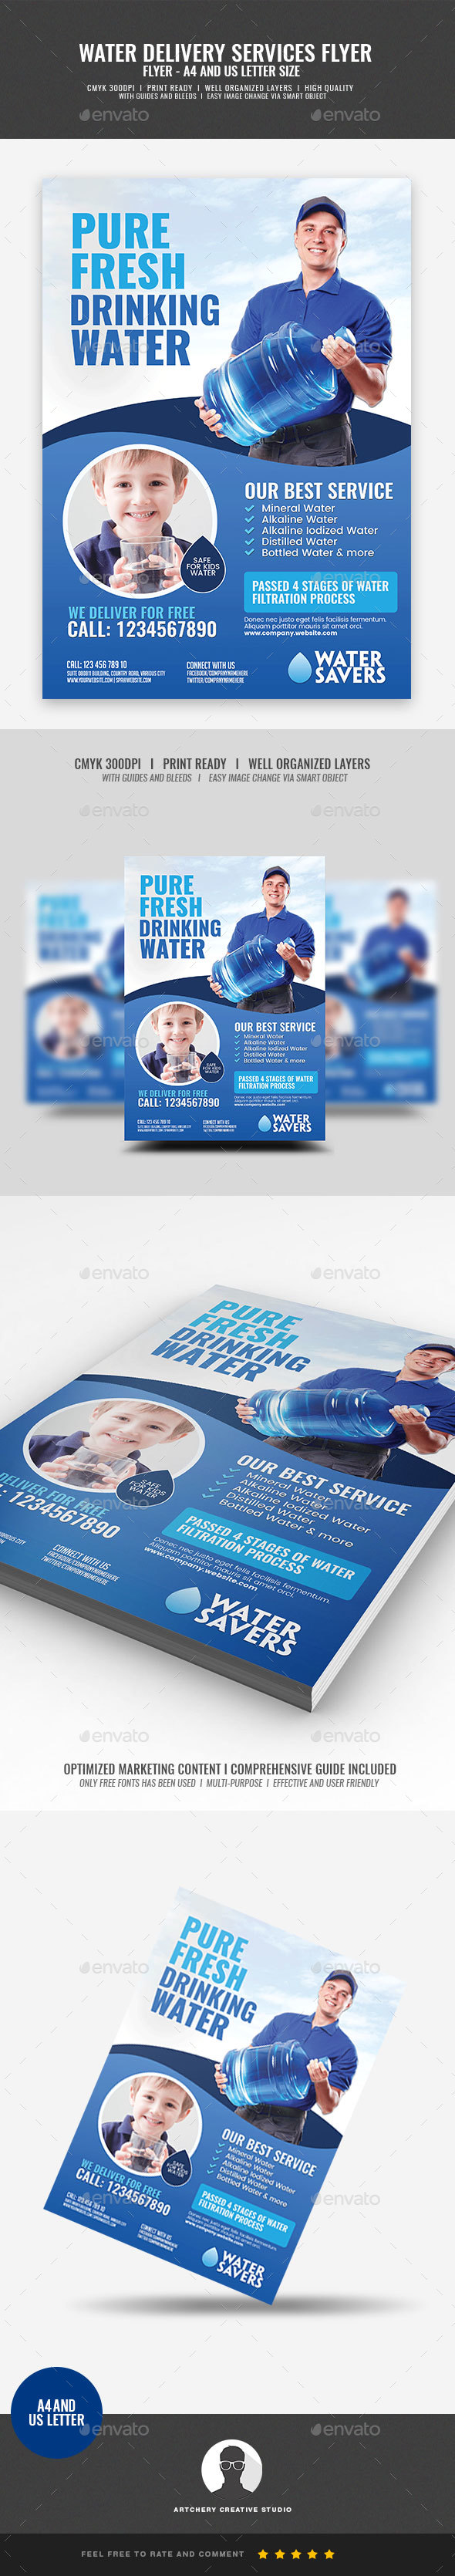 Drinking Water Services Flyer - Corporate Flyers